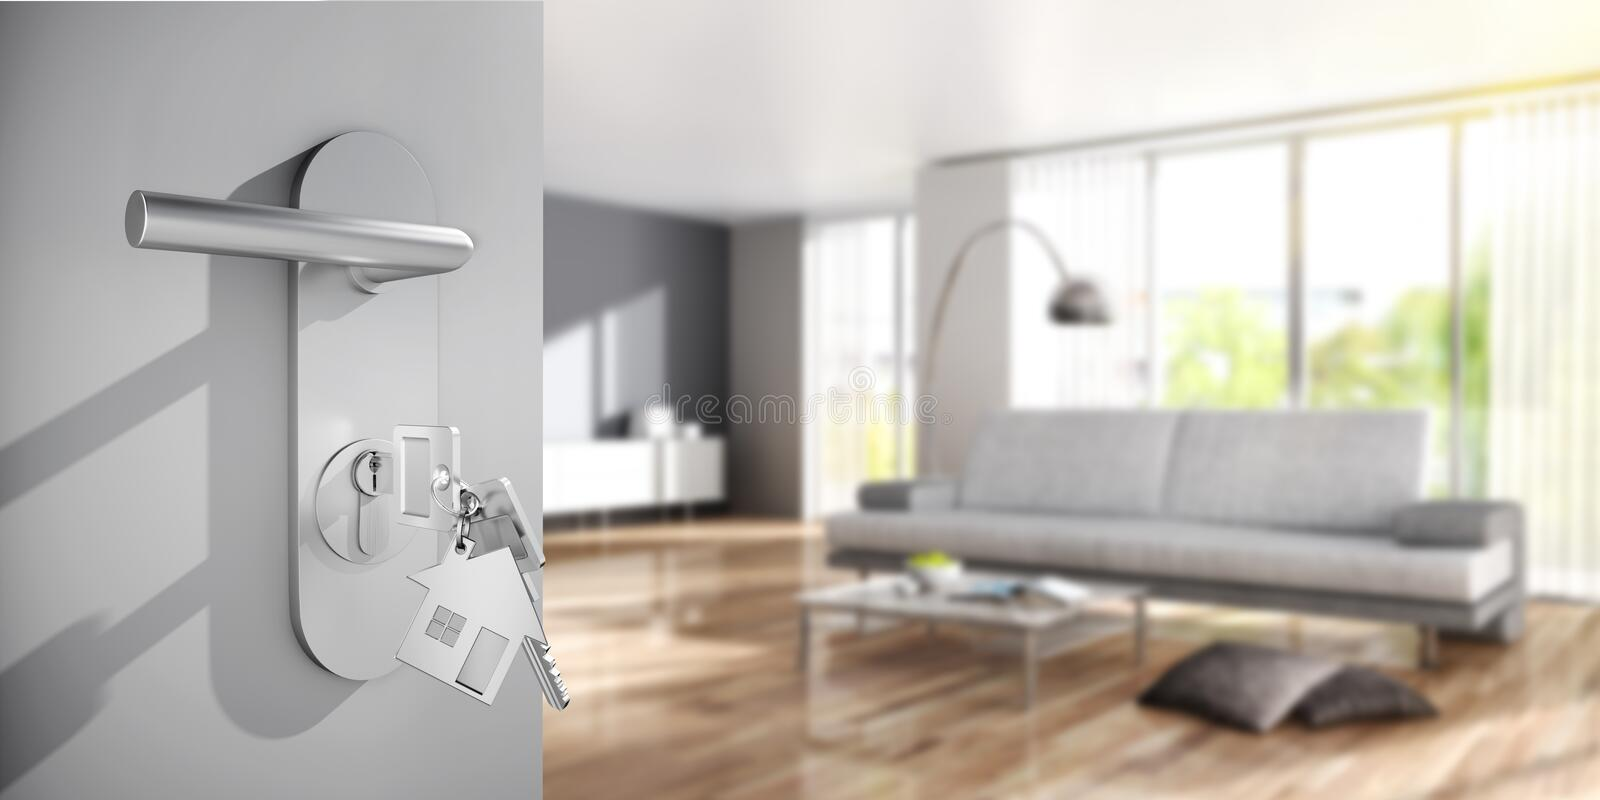 Open door with keys agains a sunny apartment royalty free stock image